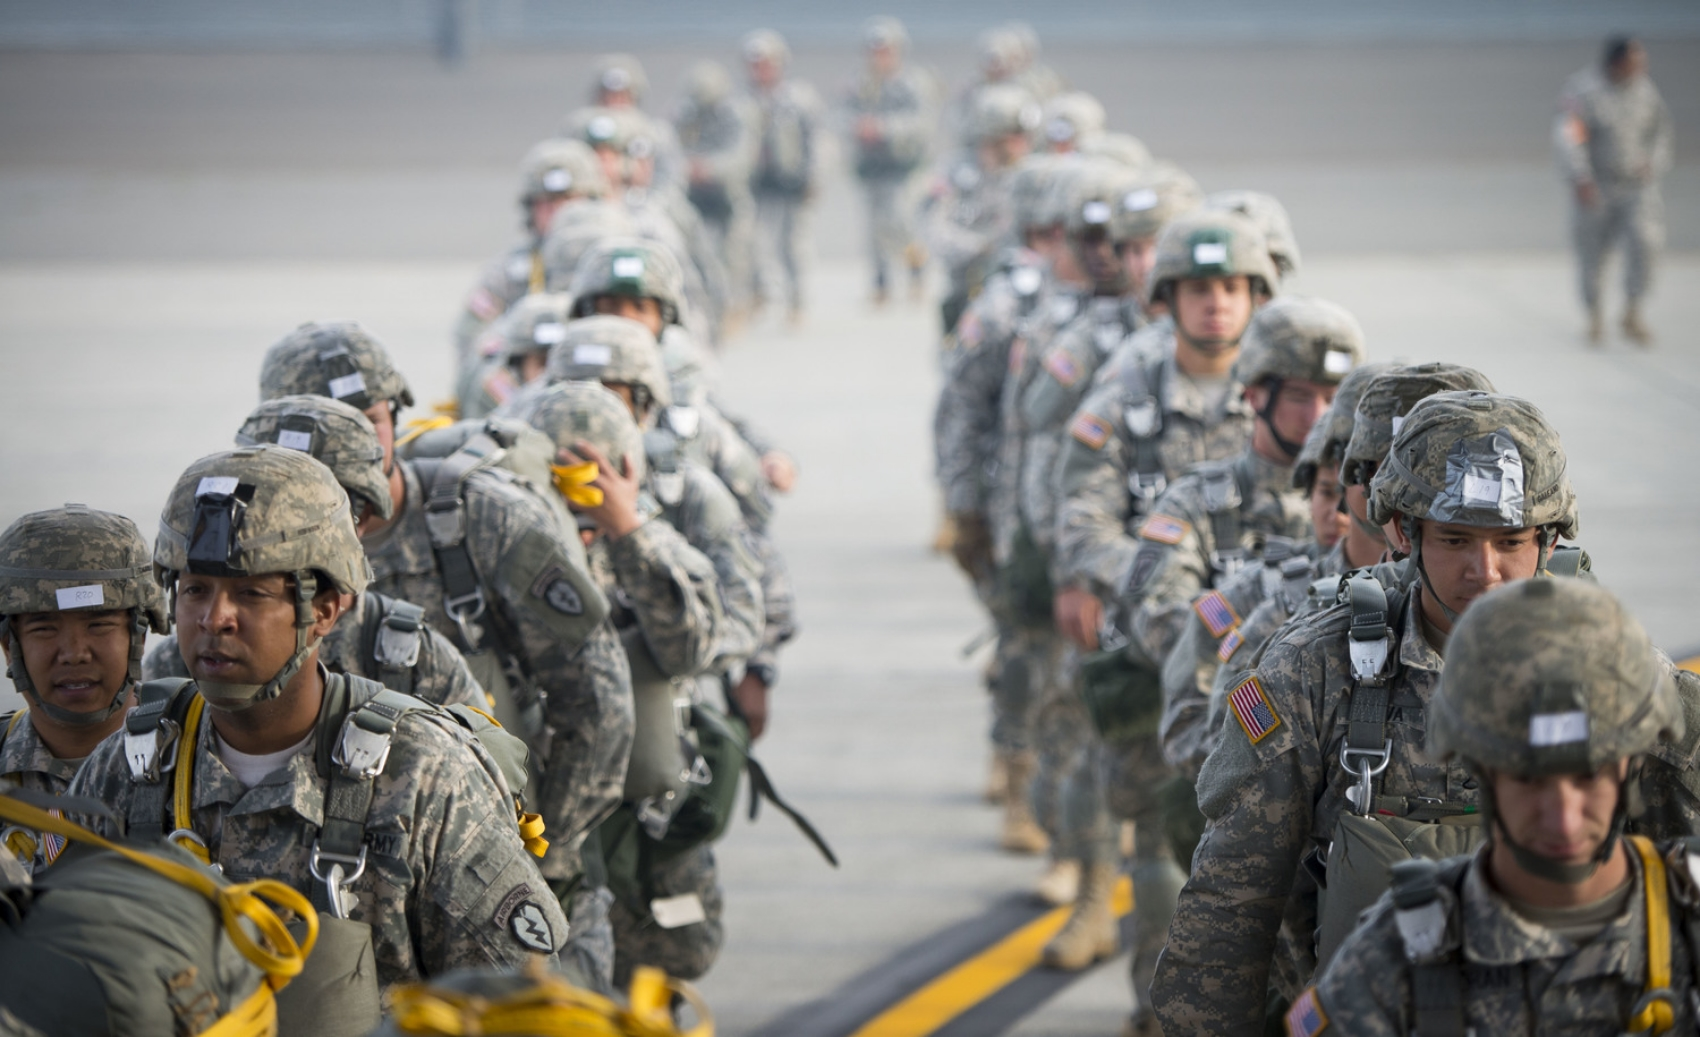 Army Paratroopers from the 725th Brigade Support Battalion prepare to board a C-130 Hercules from the 36th Airlift Squadron prior to a training sortieat Joint Base Elmendorf-Richardson, Alaska.